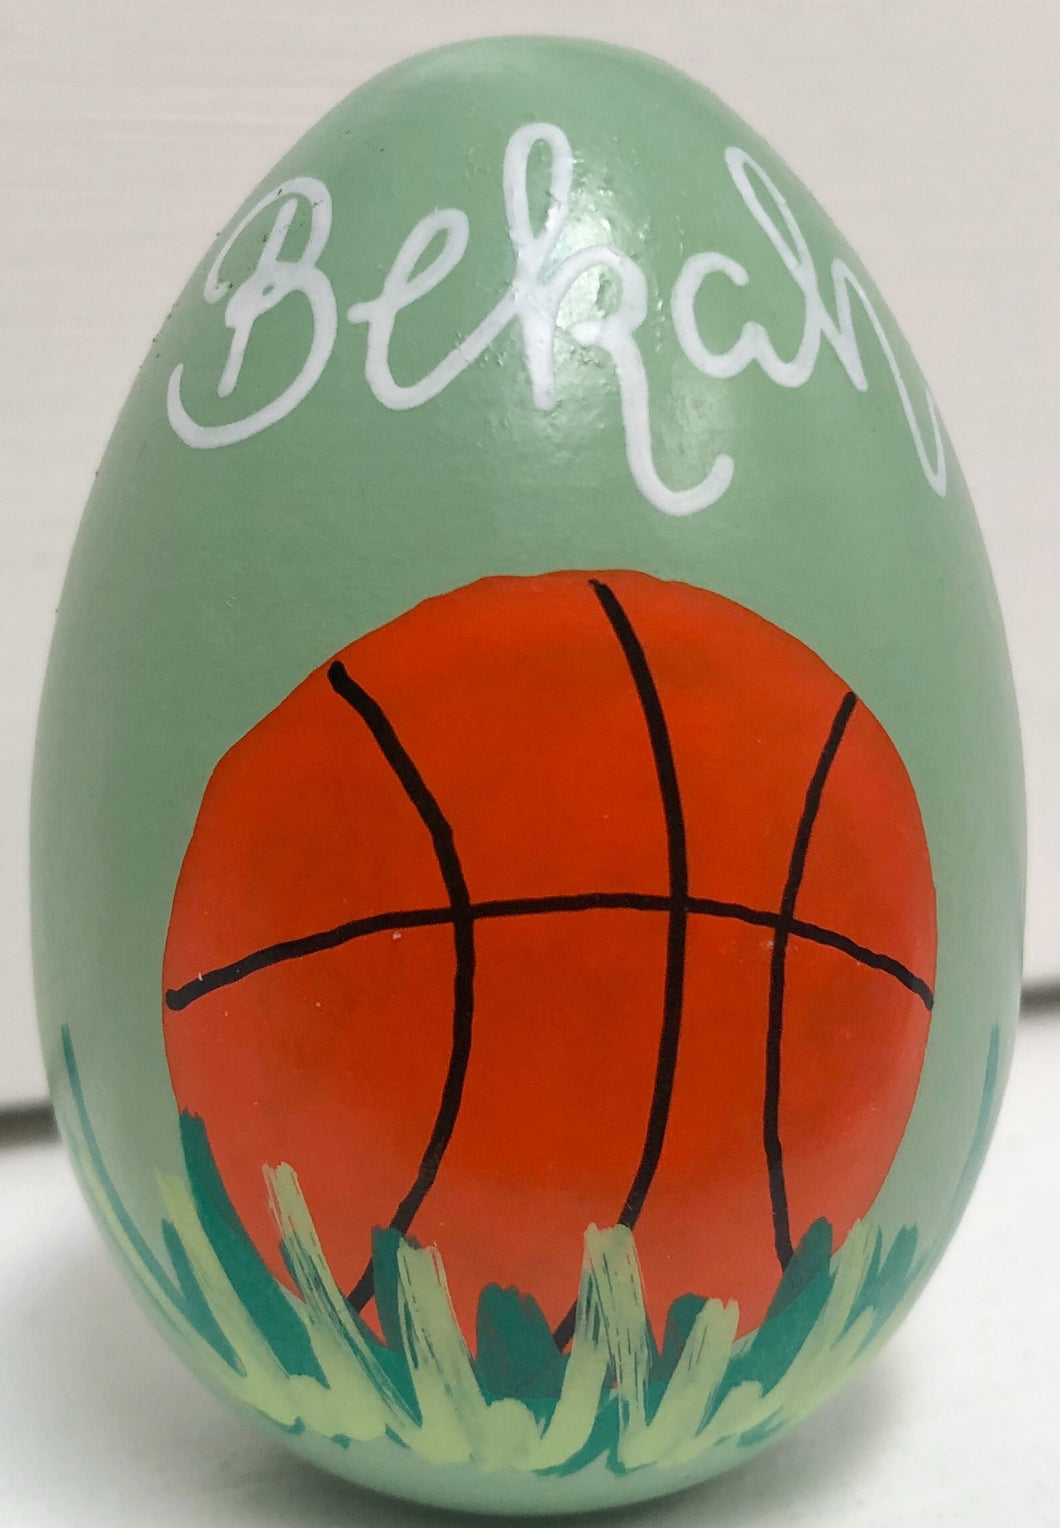 Easter Egg- Standard Basketball